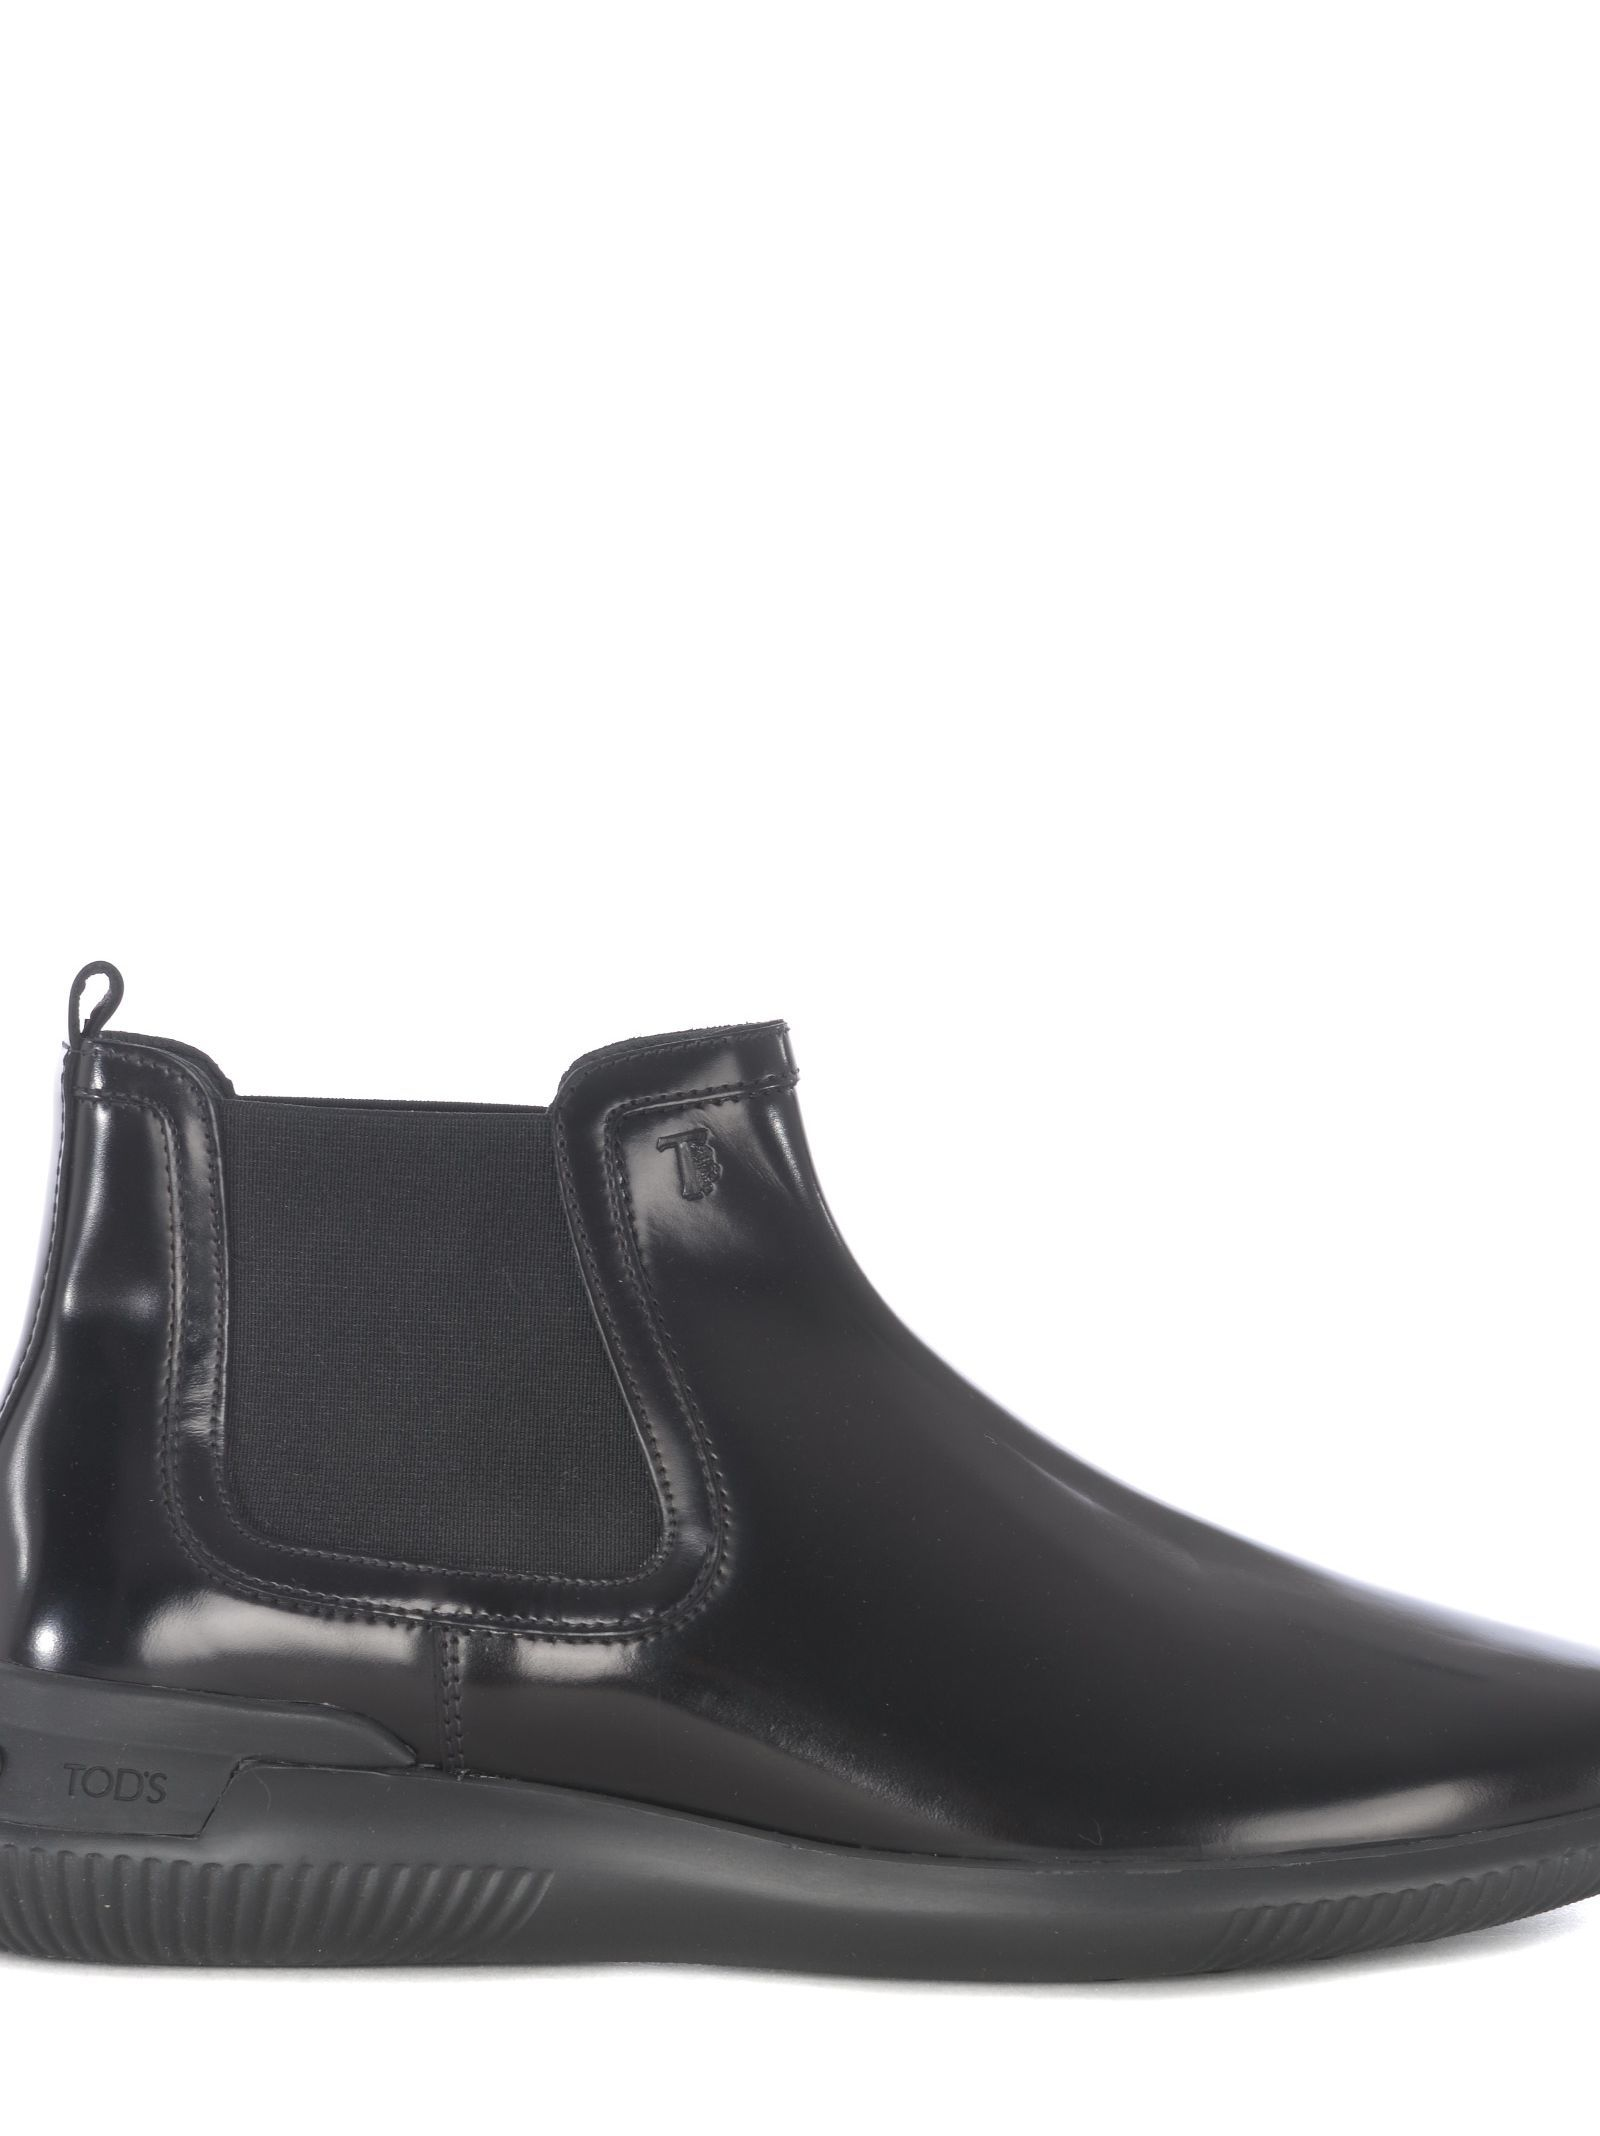 385e05abba TOD'S SMOOTH LEATHER ANKLE BOOTS. #tods #shoes | Tod'S | Leather ...